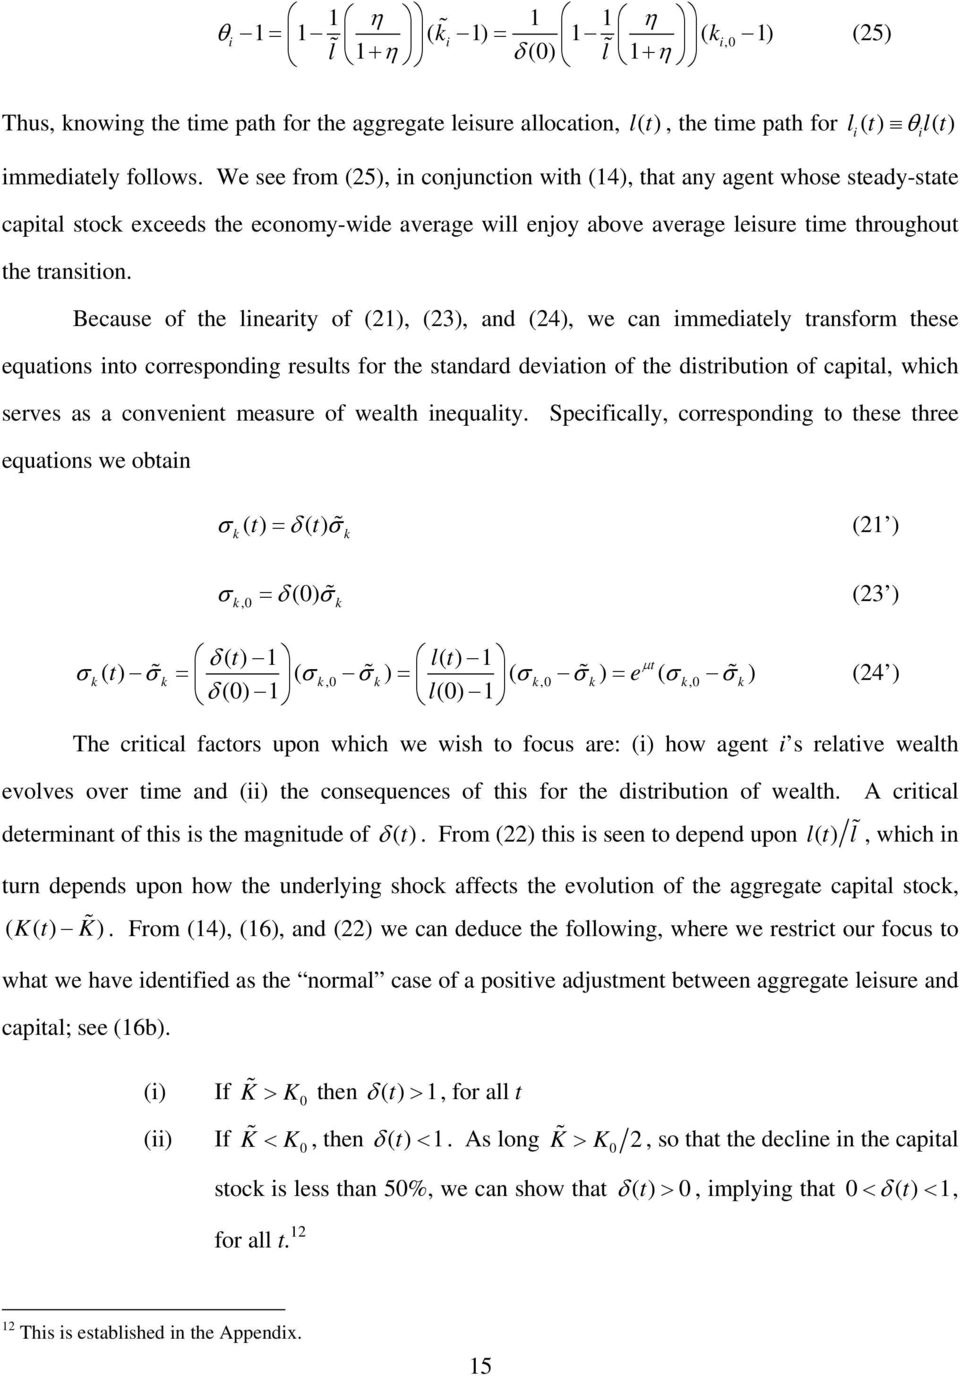 Because of the nearty of (21), (23), and (24), we can mmedatey transform these equatons nto correspondng resuts for the standard devaton of the dstrbuton of capta, whch serves as a convenent measure